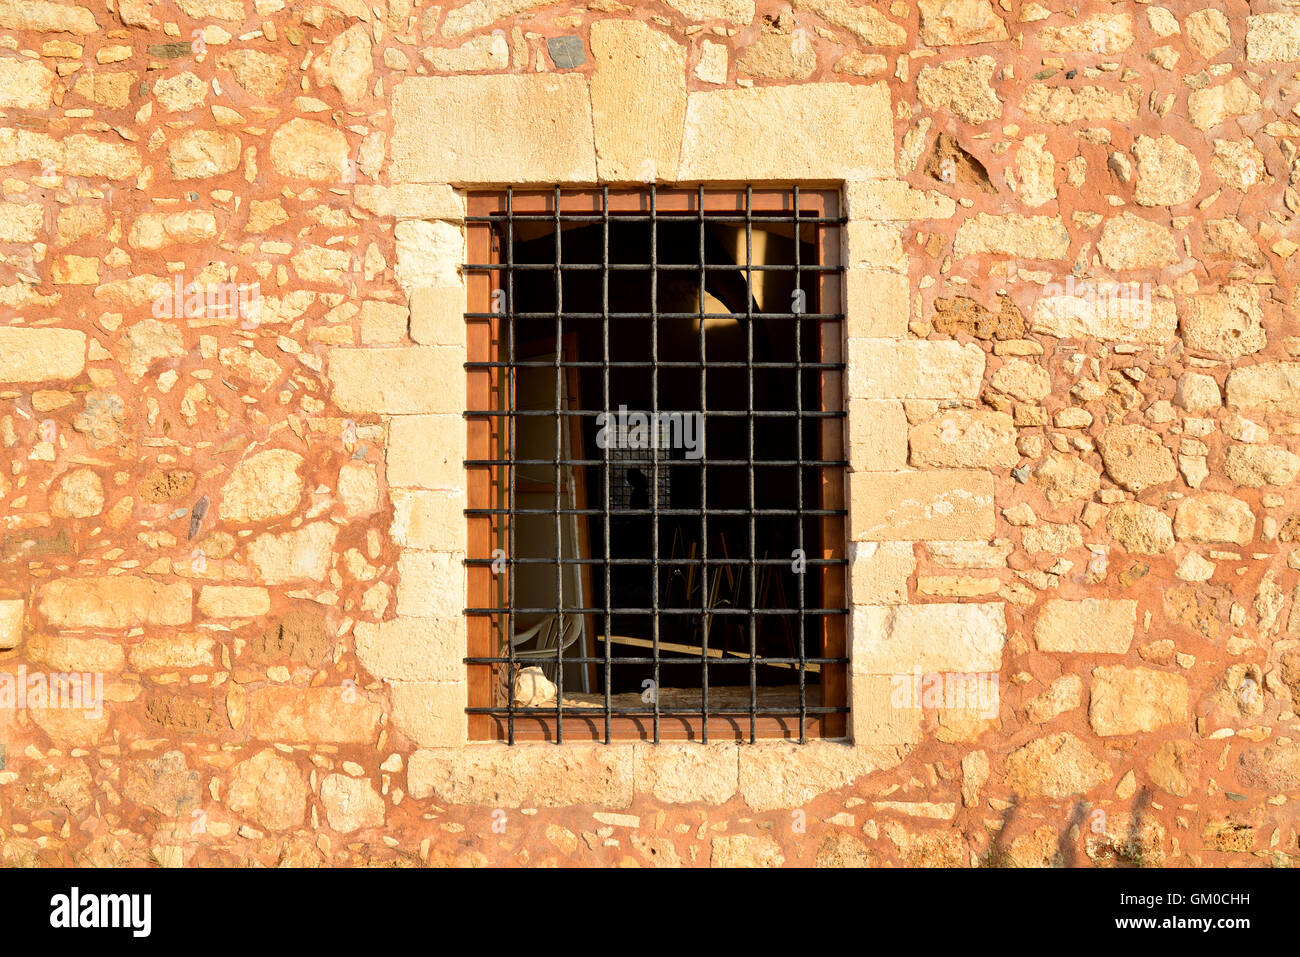 Rethymno city Greece Fortezza fortress window detail Stock Photo